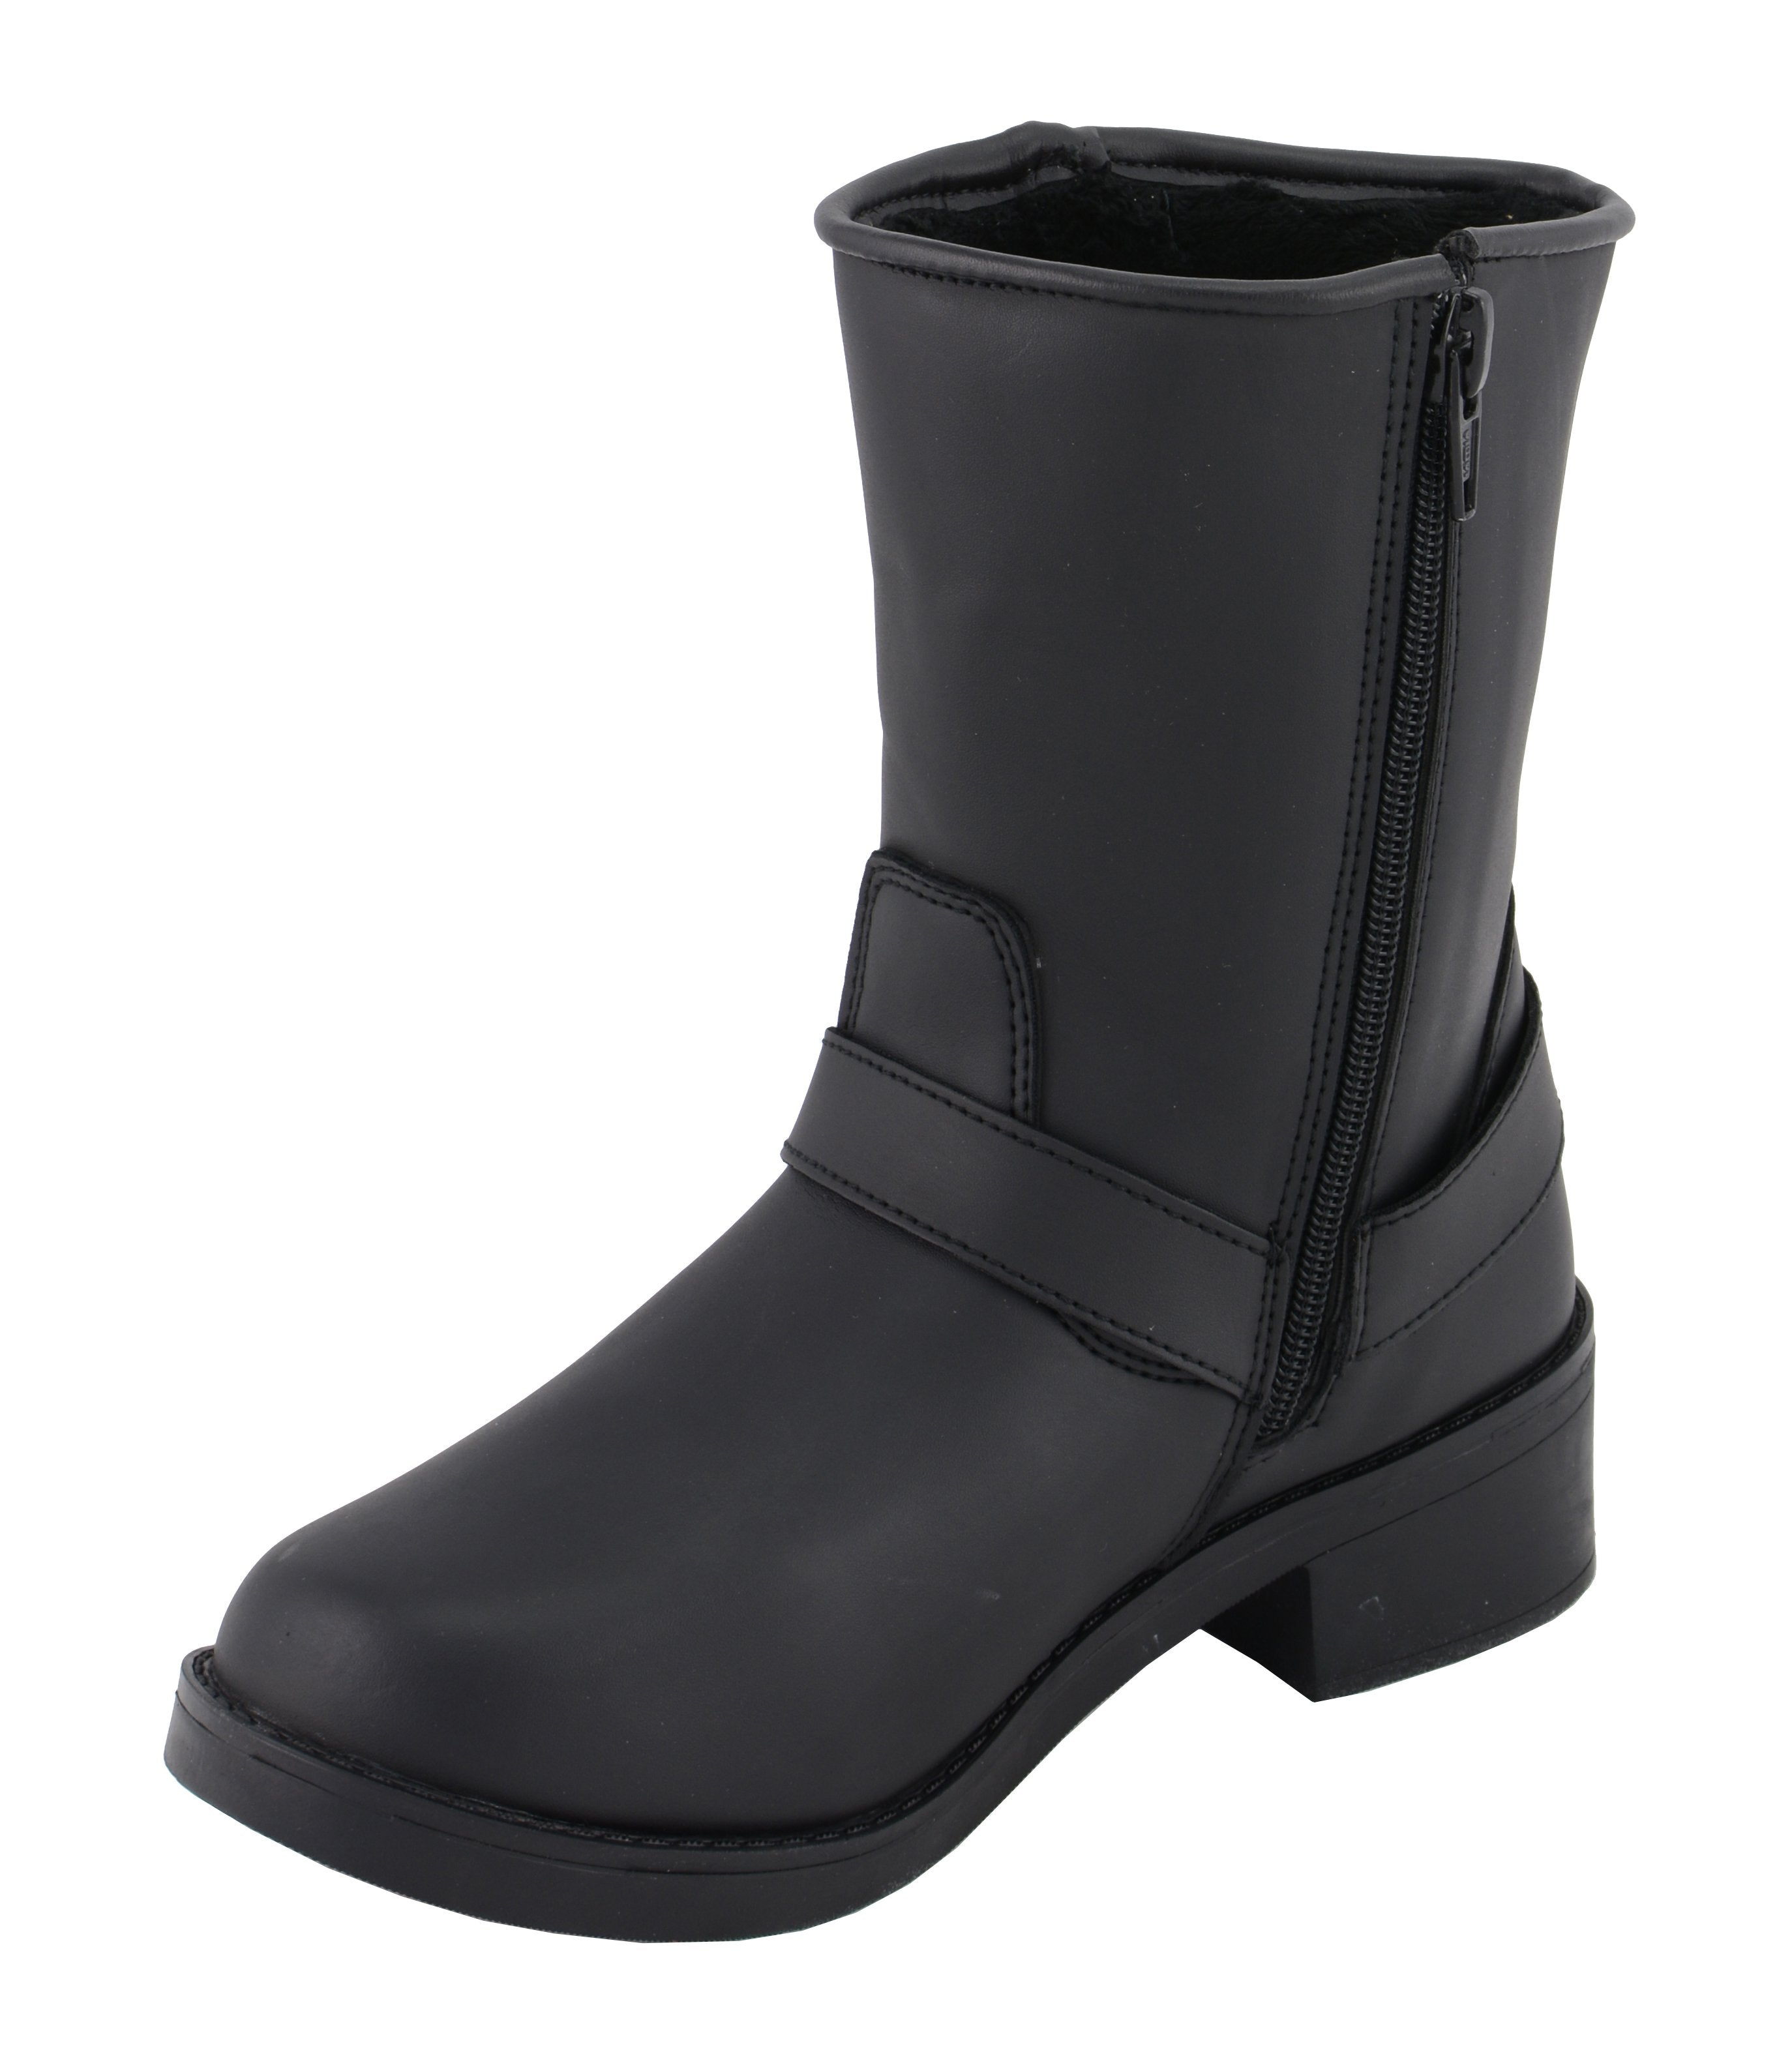 Milwaukee Leather MBL9475 Ladies Black Engineer Style Riding Boots